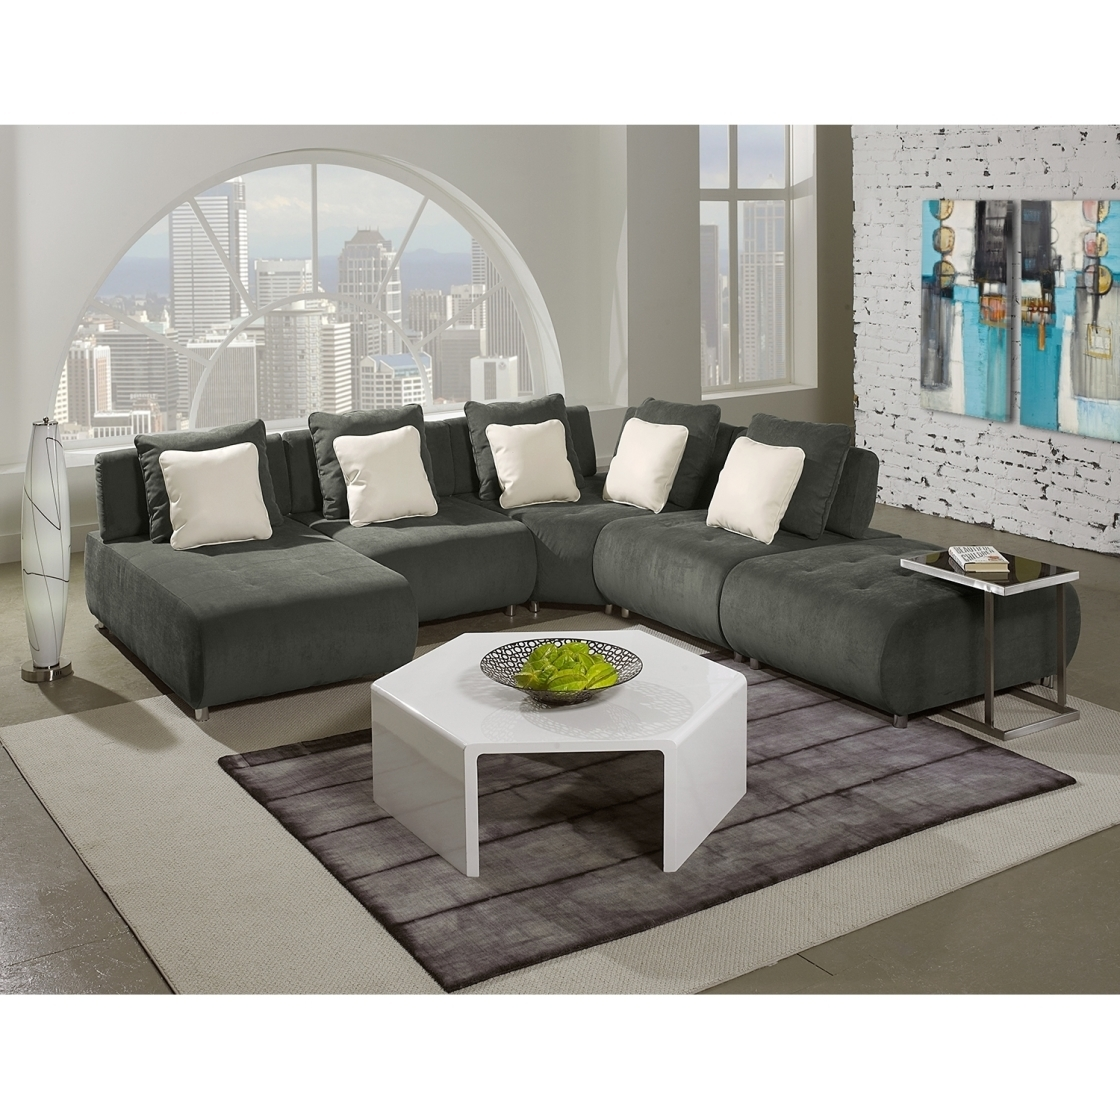 Beautiful Sleek Sectional Sofas 66 In Sectional Sofa For Small Space Within Sleek Sectional Sofas (View 3 of 10)